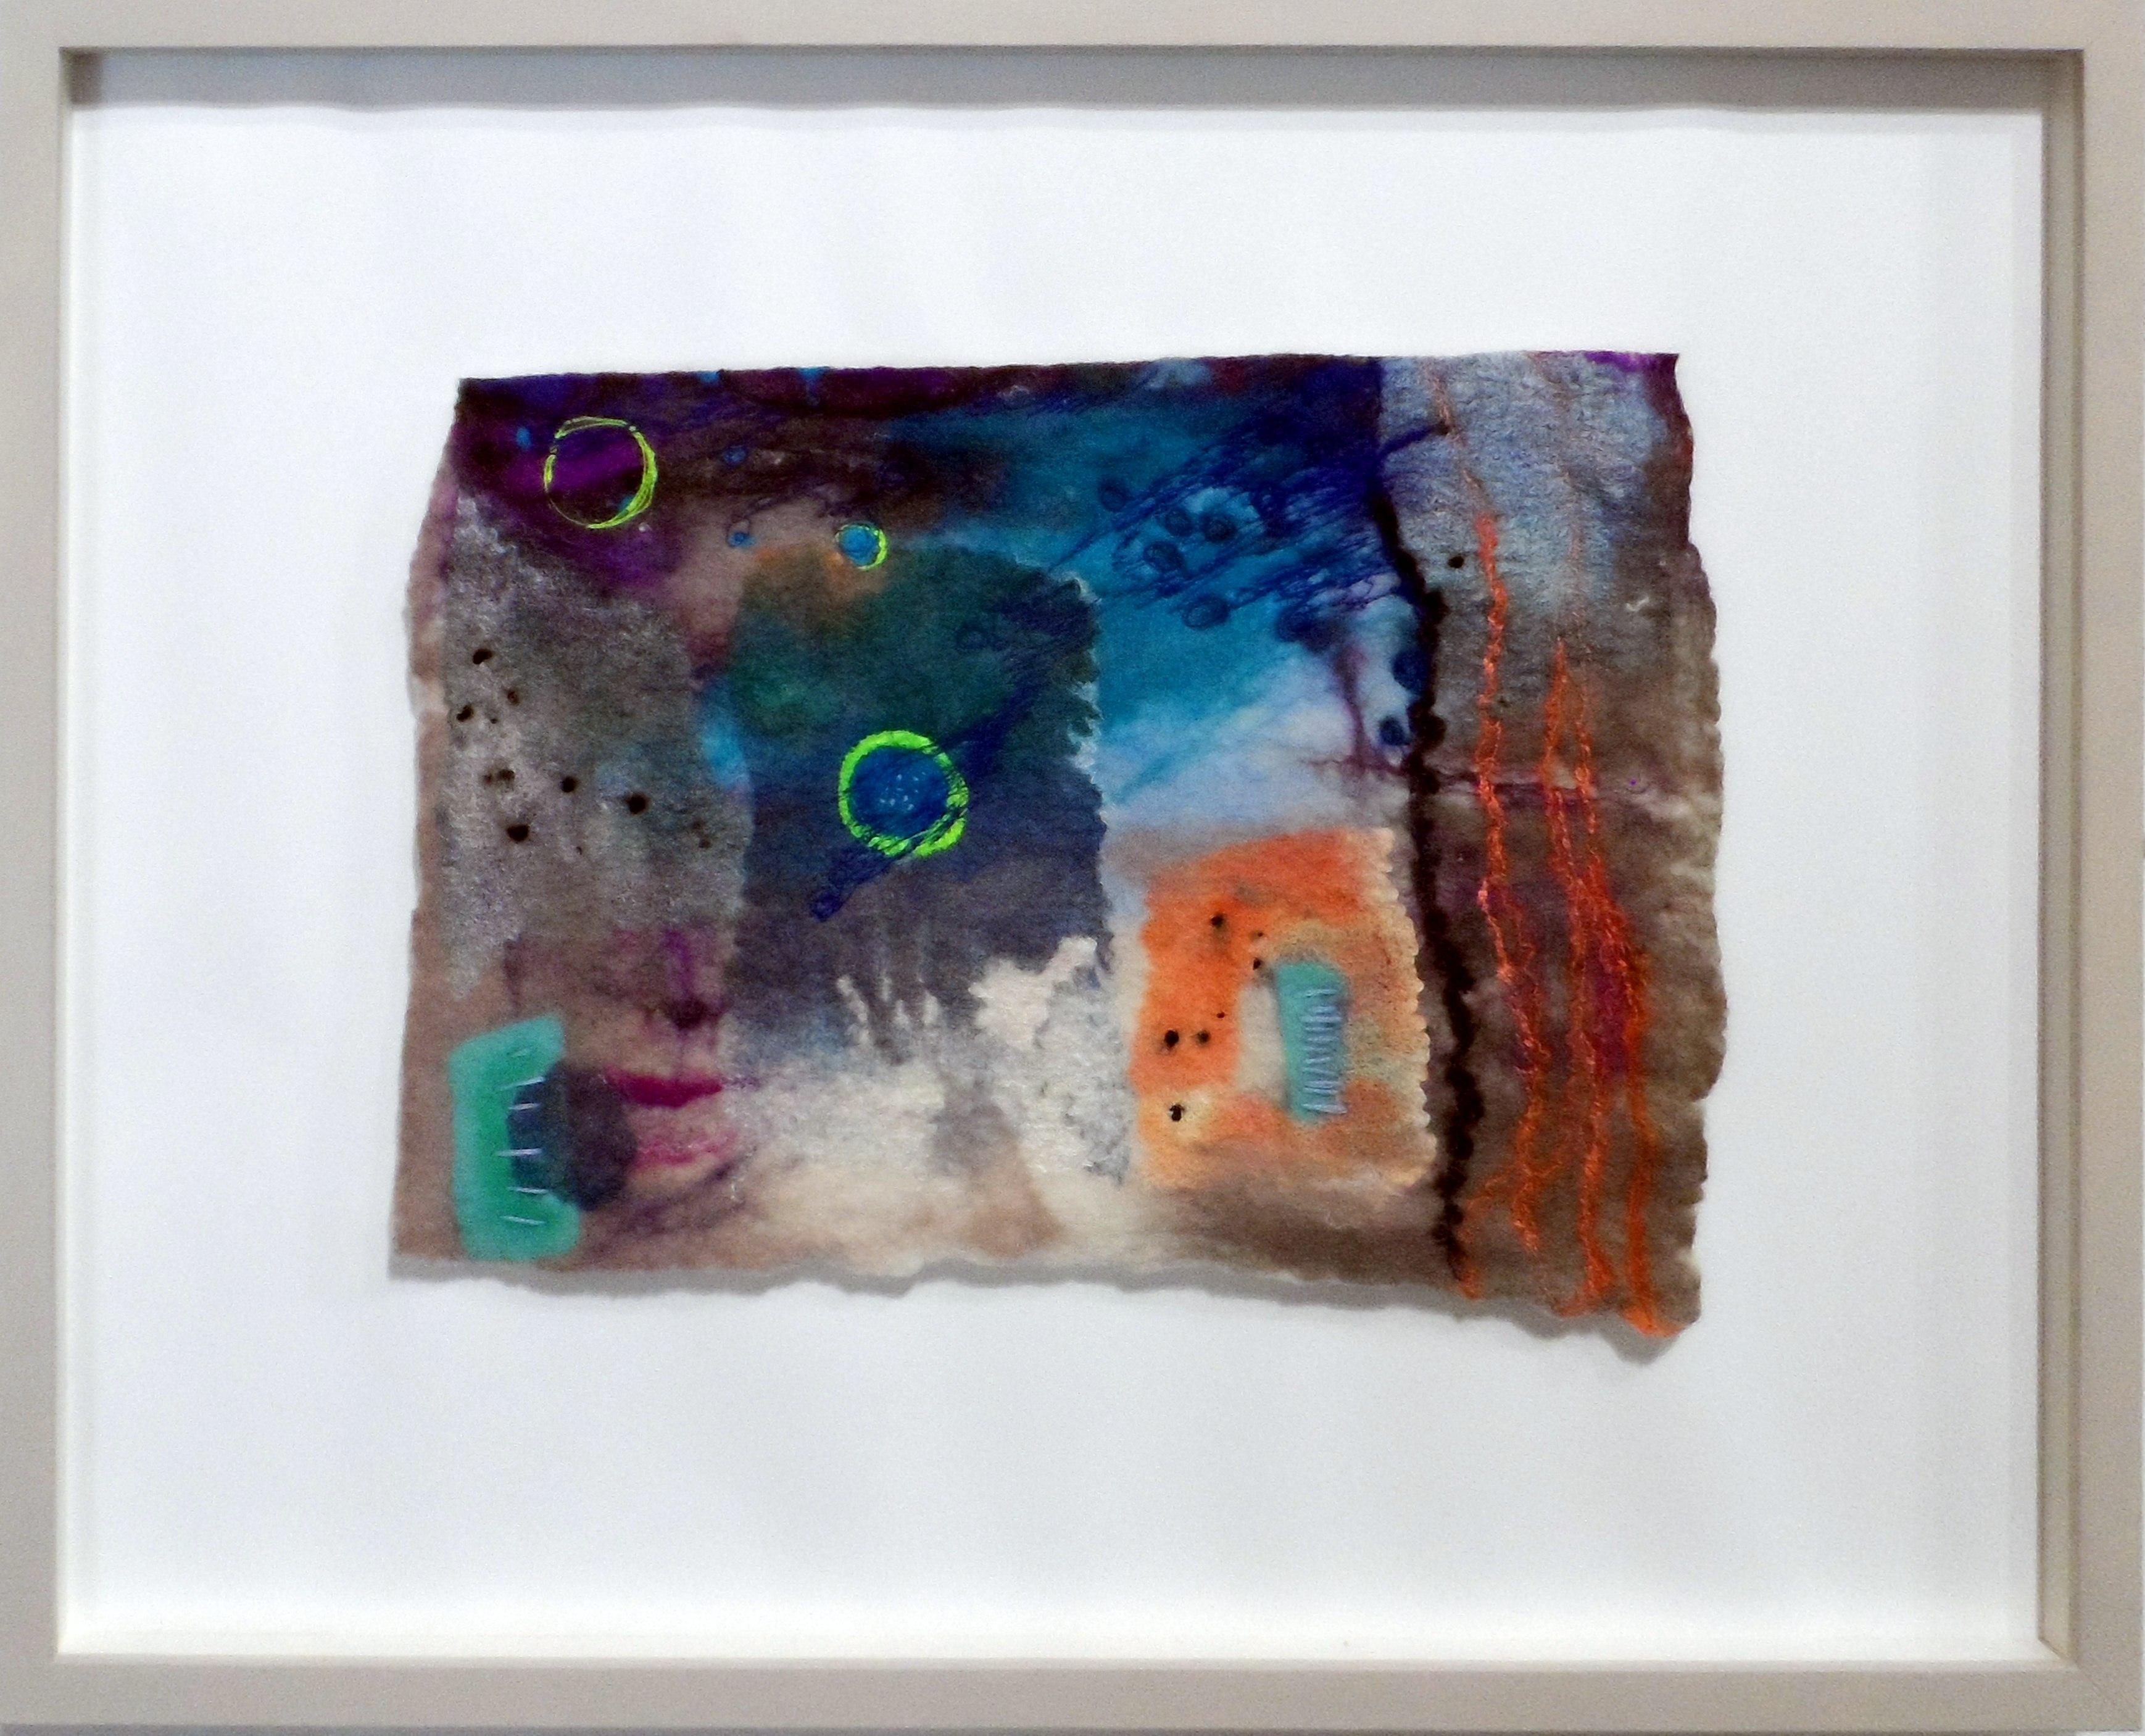 DRIZZLE by Catherine Carmyllie, felted wool, silks, dyed & painted, re-View Textile Group, Frodsham 2019